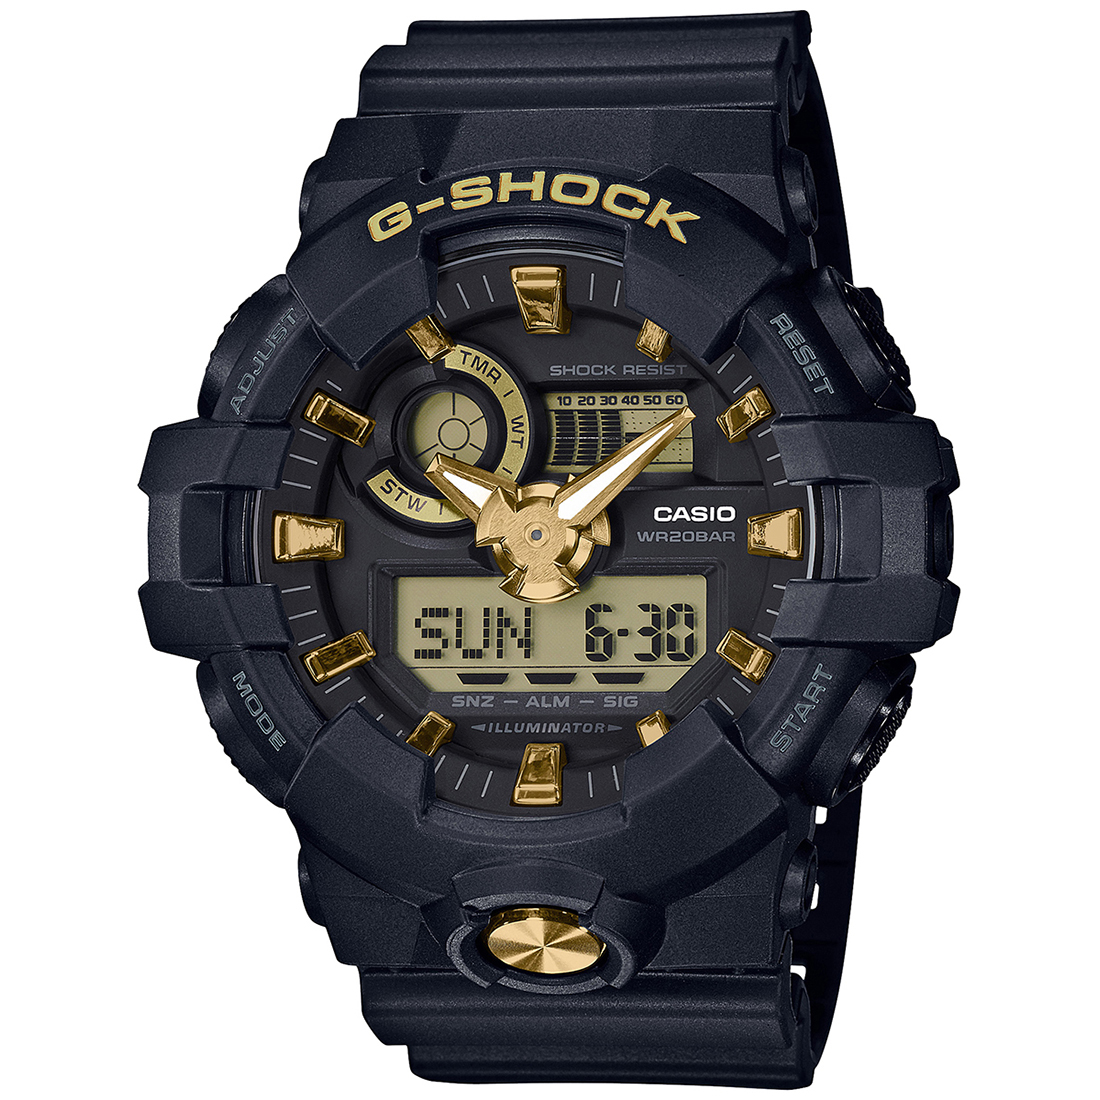 g849 ga-710b-1a9dr g-shock watch-G849